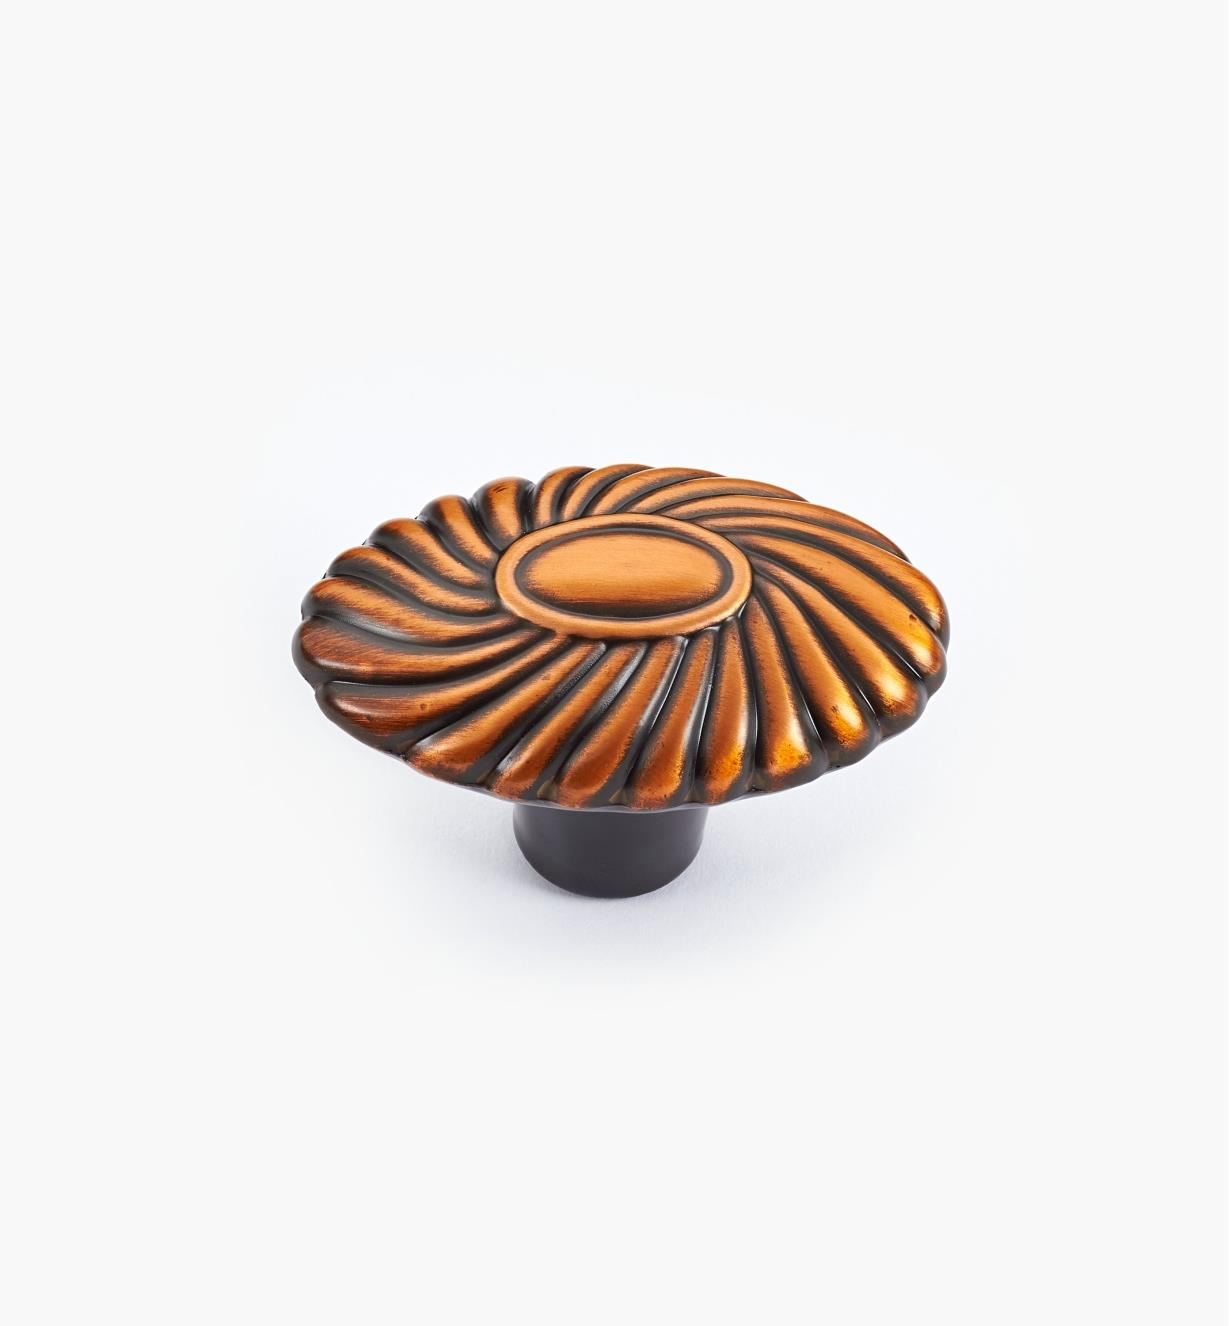 02W3445 - Orchid Brushed Antique Copper Knob